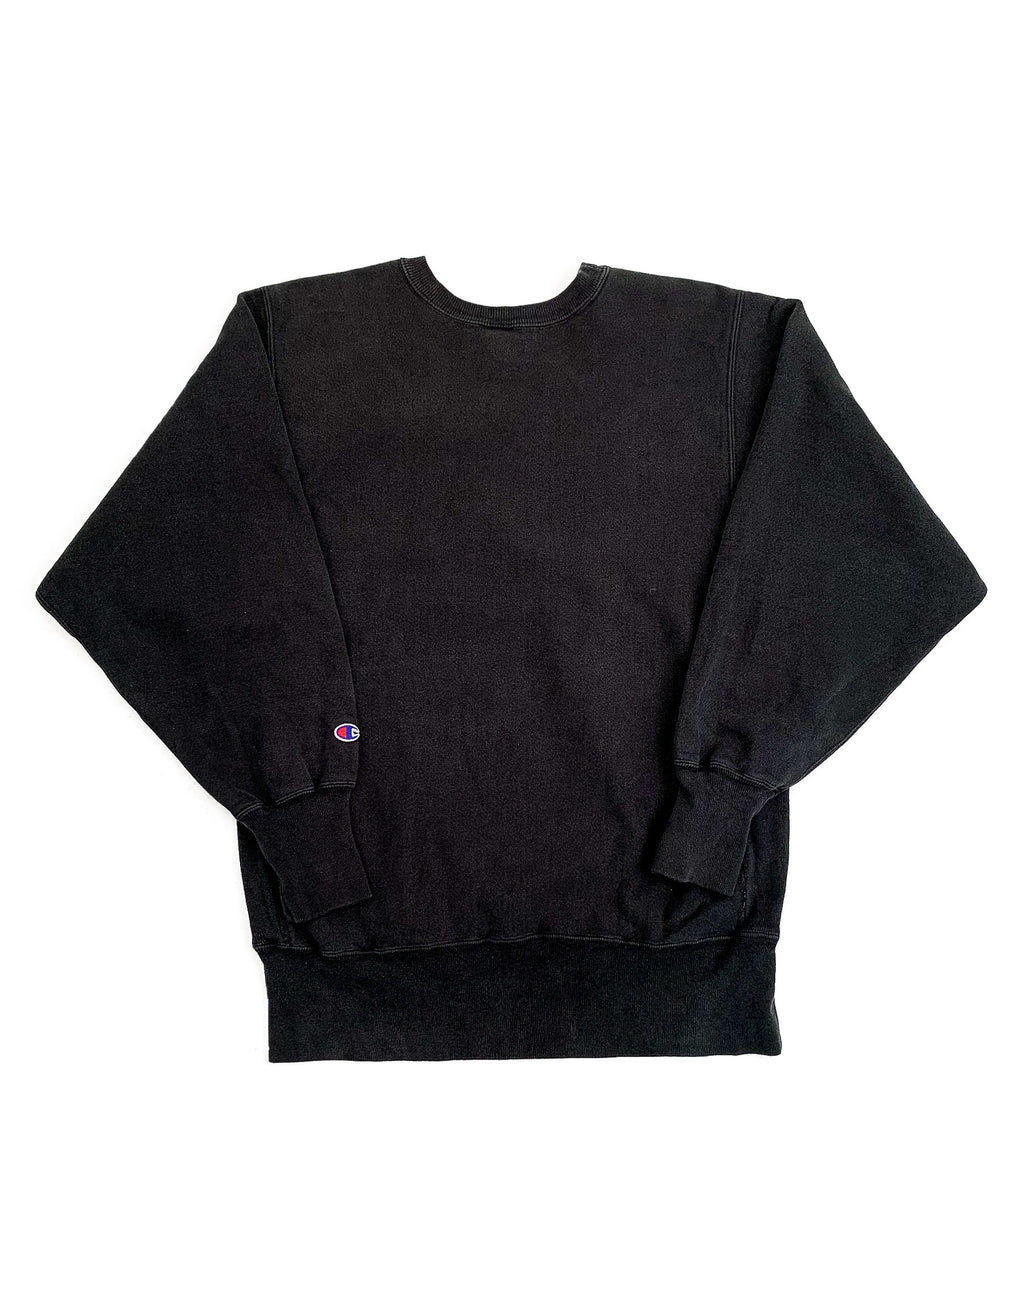 CHAMPION BLACK SWEATSHIRT